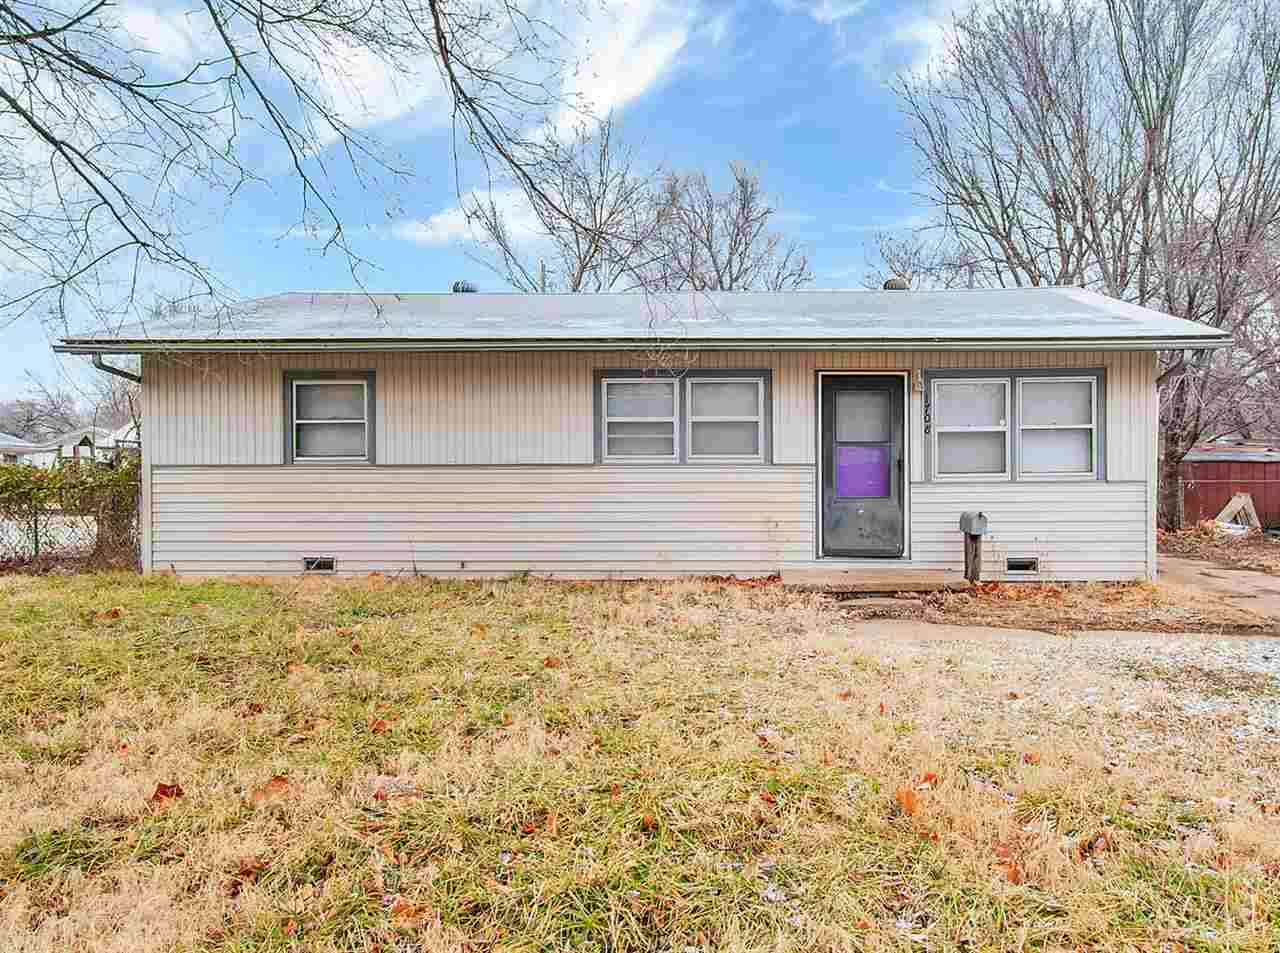 Fantastic home located near Pawnee and Seneca Streets, with easy access to I-235, major employers, s